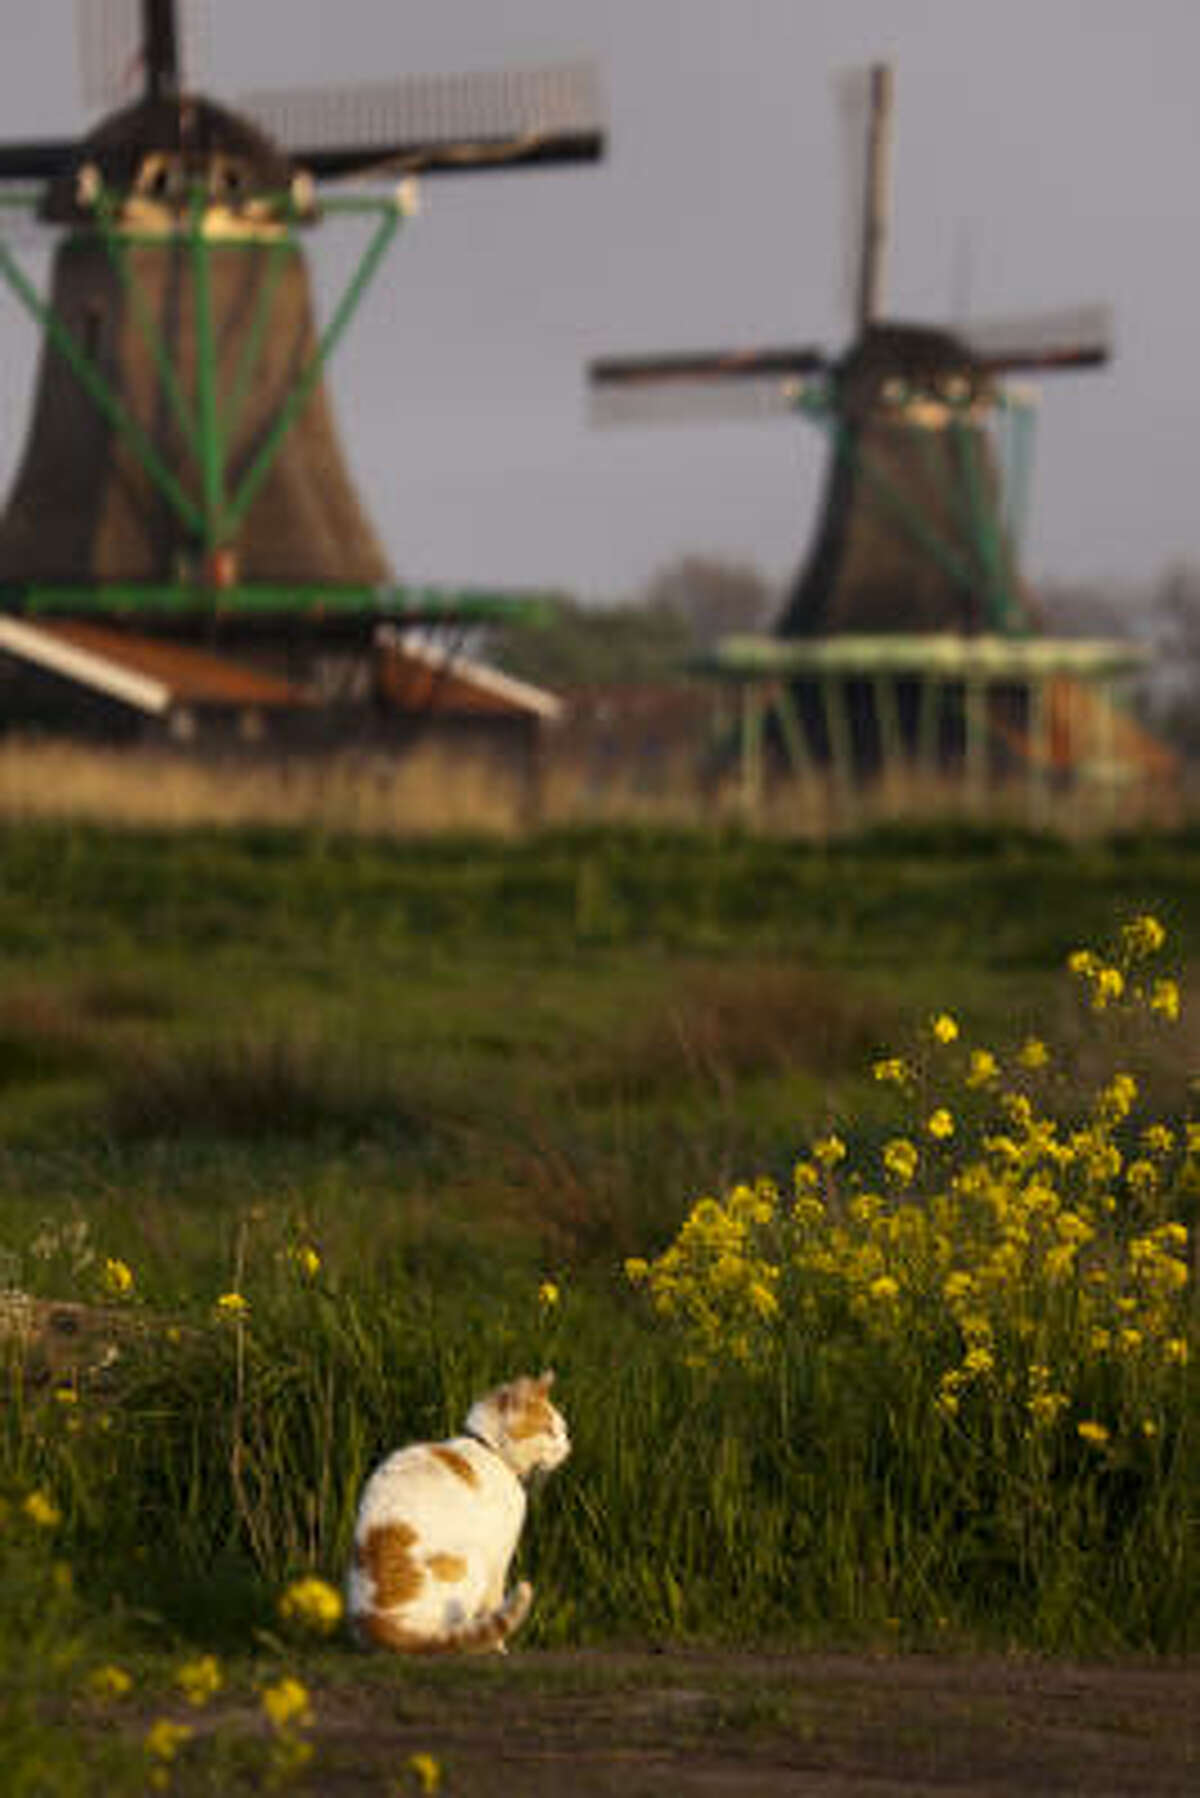 A cat takes in some evening sunshine amidst windmills at Zaanse Schans.